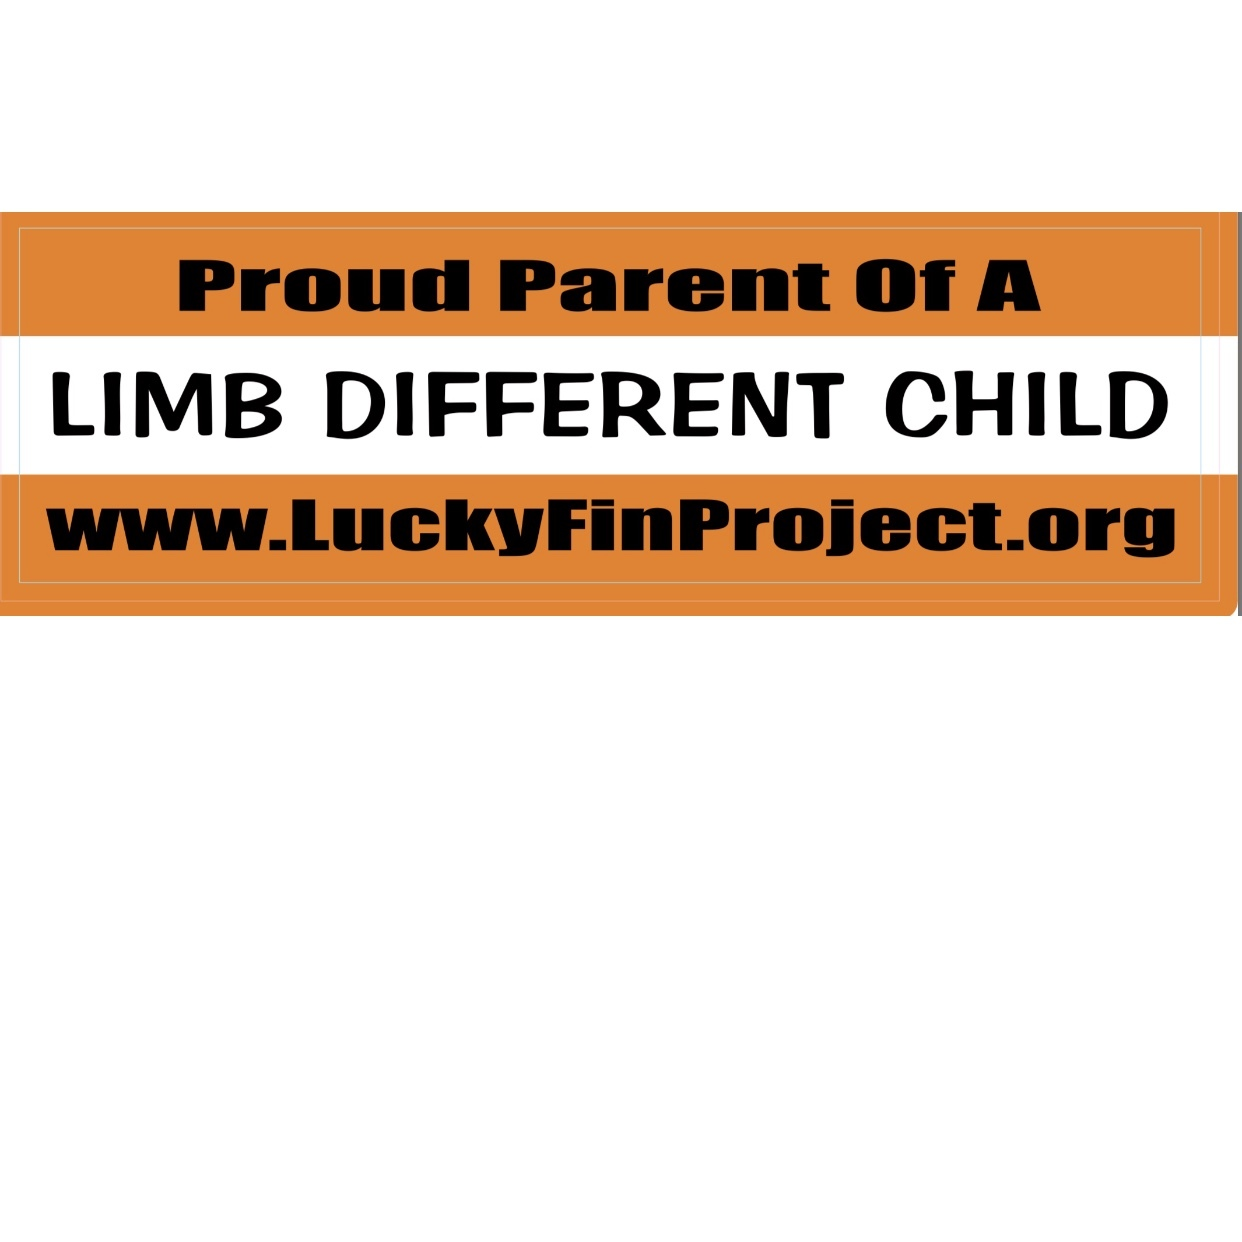 Proud Parent Bumper Sticker Proud- BUMPER